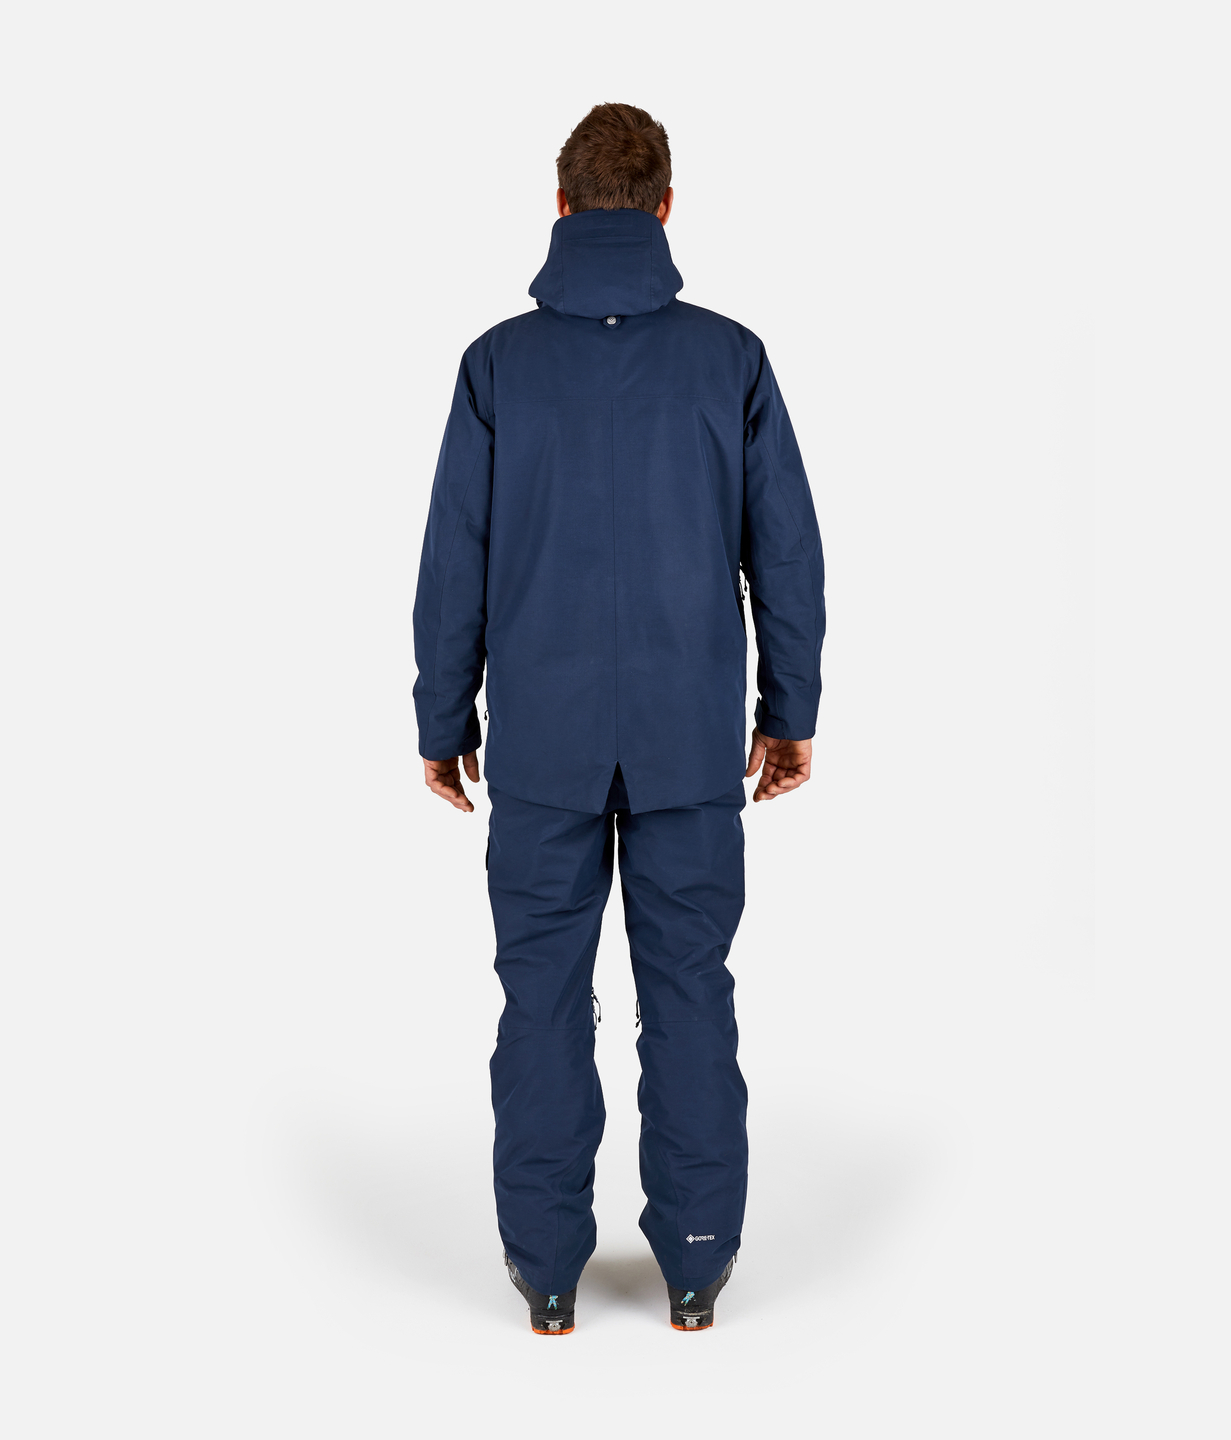 Corpus Insulated Gore-Tex Pant